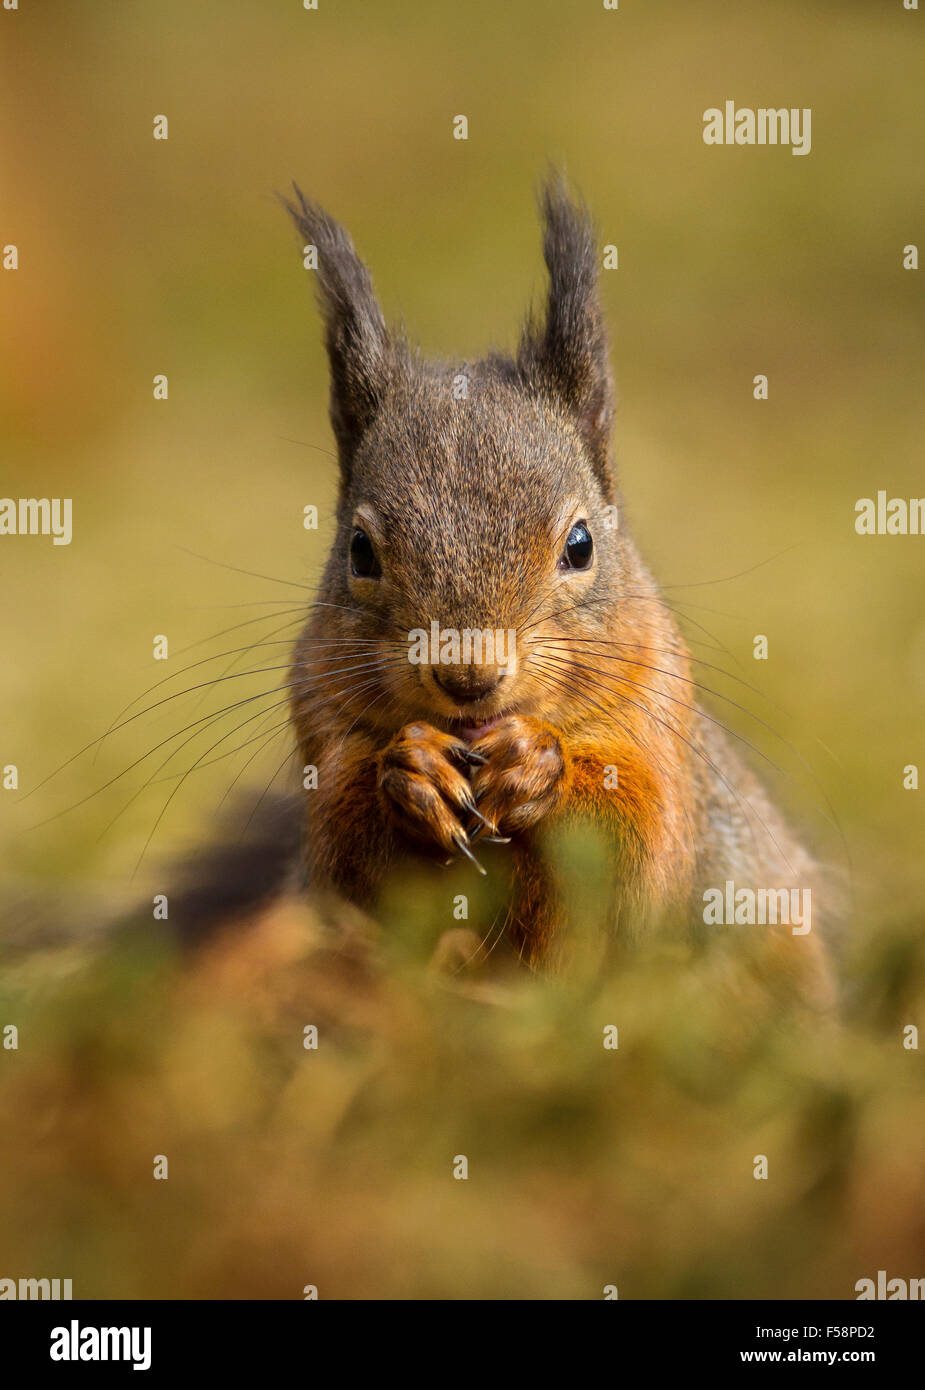 ground level shot of a sitting red squirrel with tufted ears in Autumn in Scotland - Stock Image